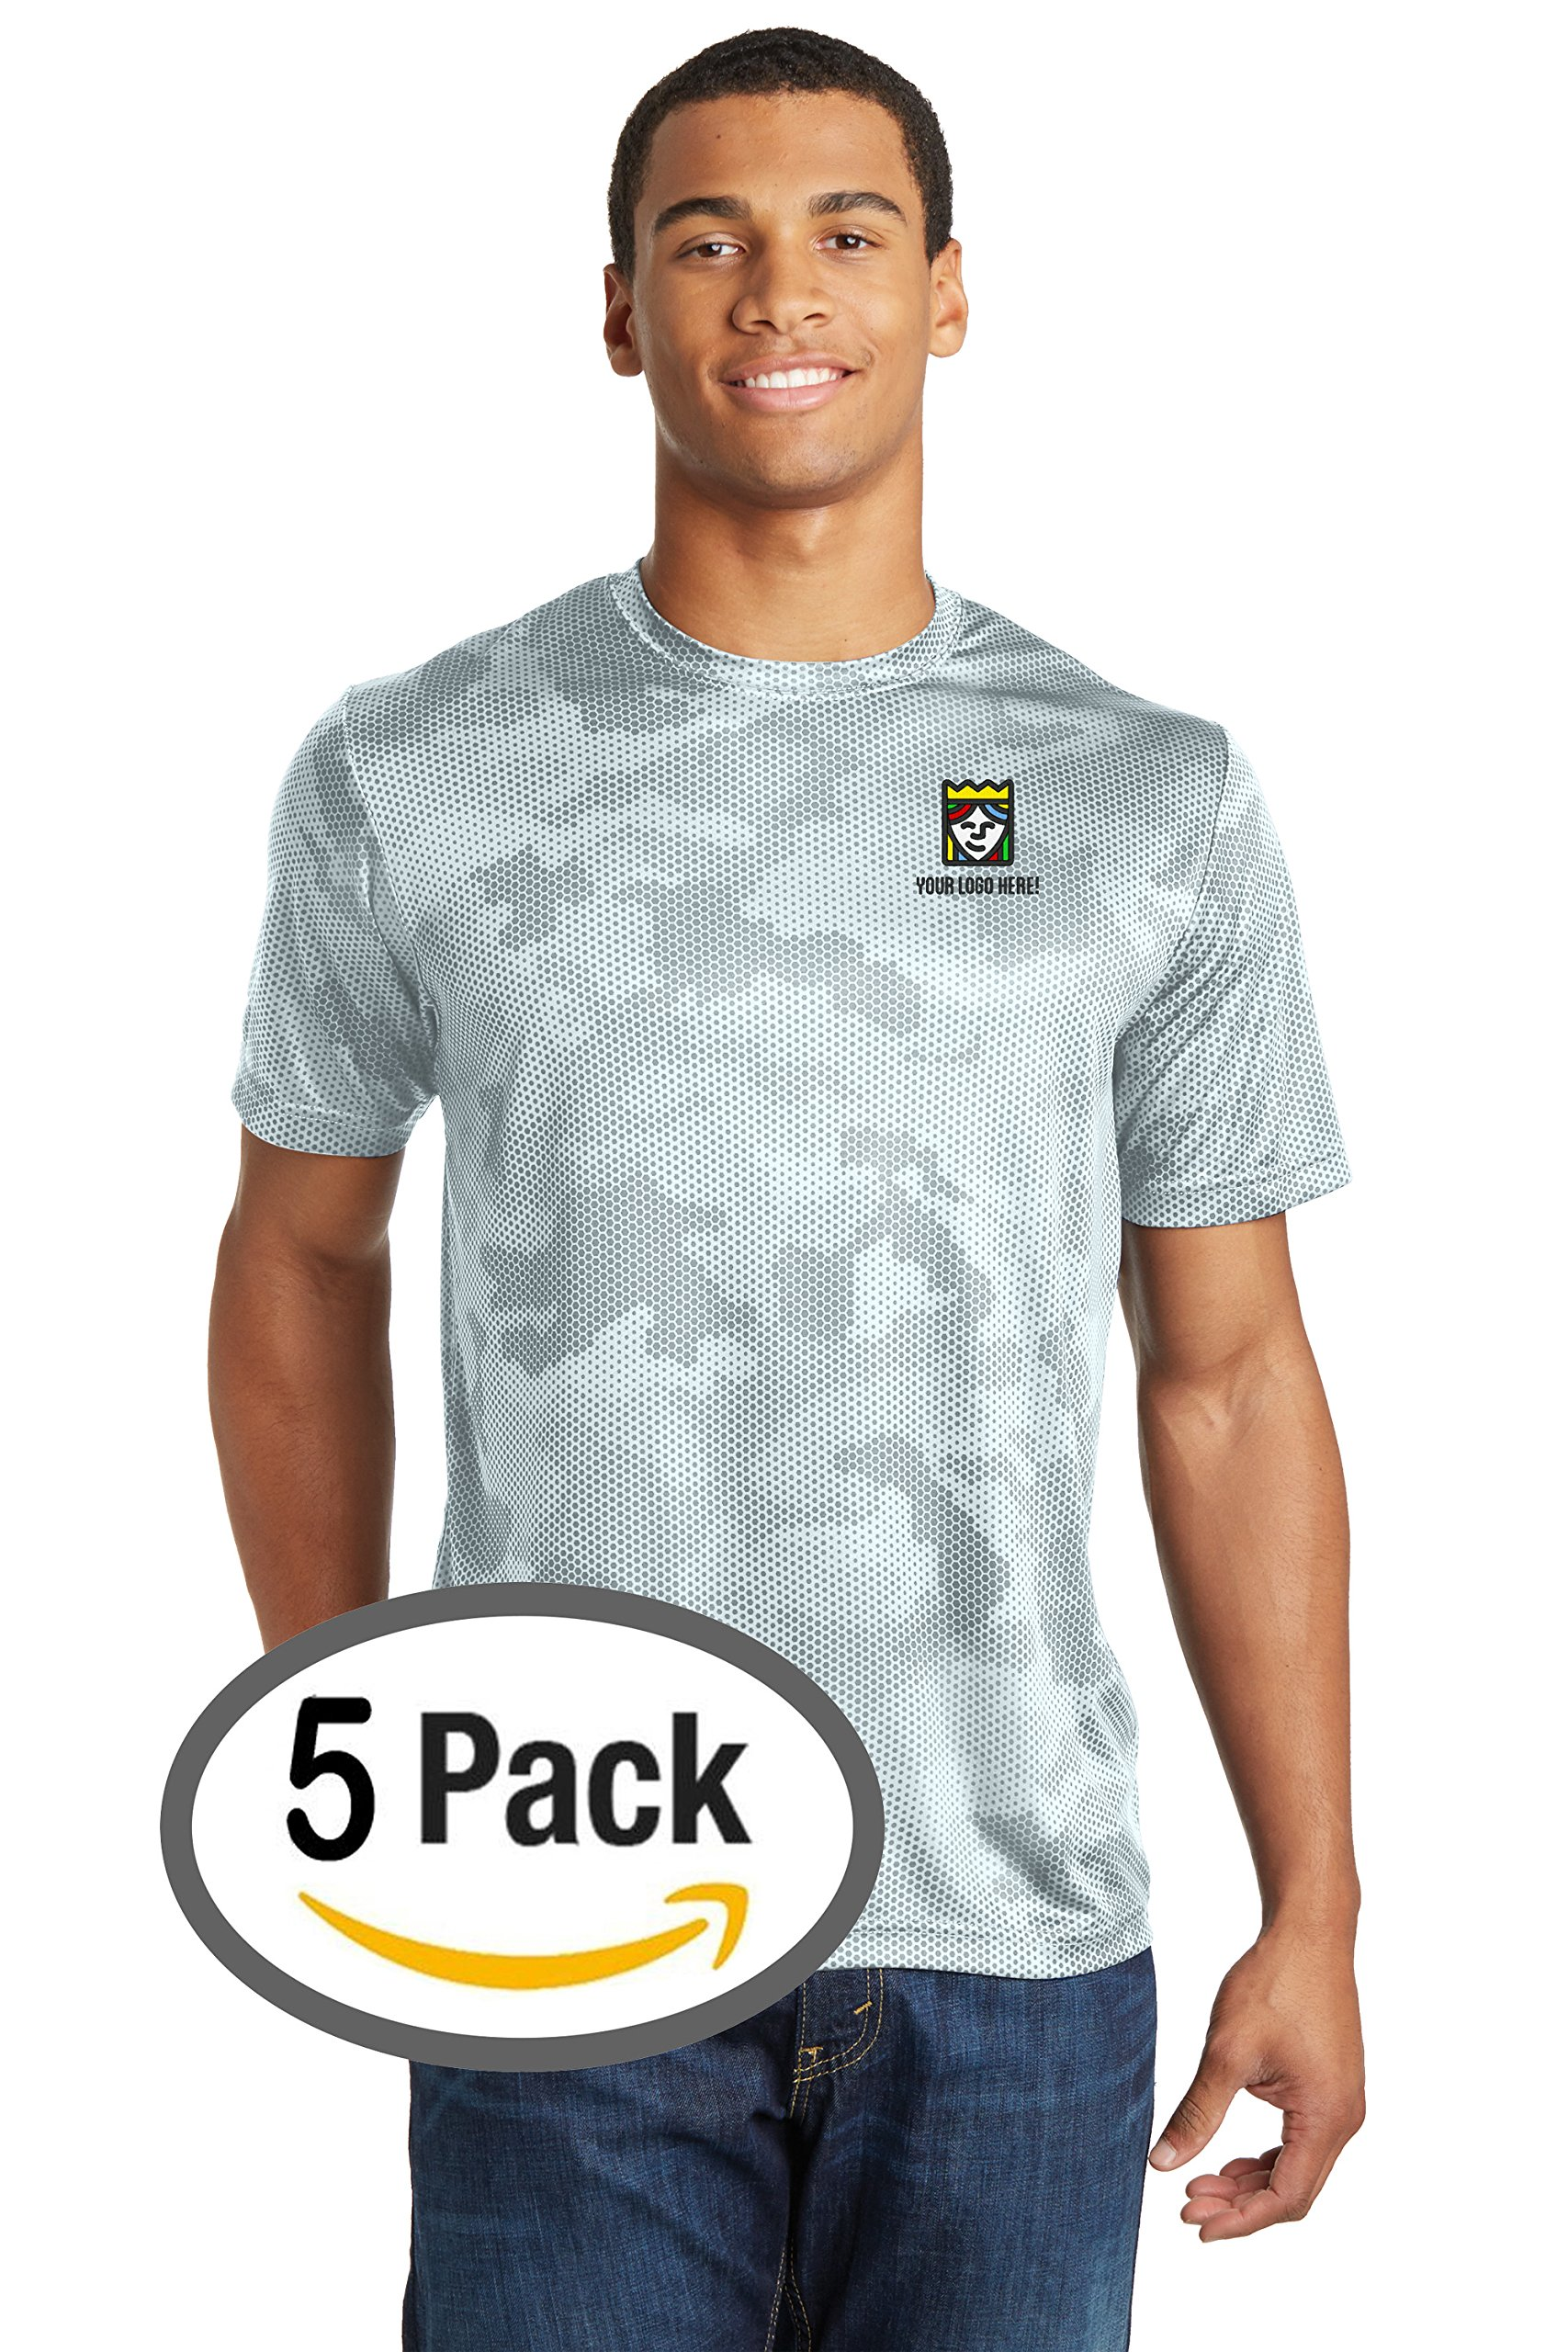 Queensboro Shirt Company Custom Embroidered Sport-Tek CamoHex Tee – Pack Of 5 by Queensboro Shirt Company